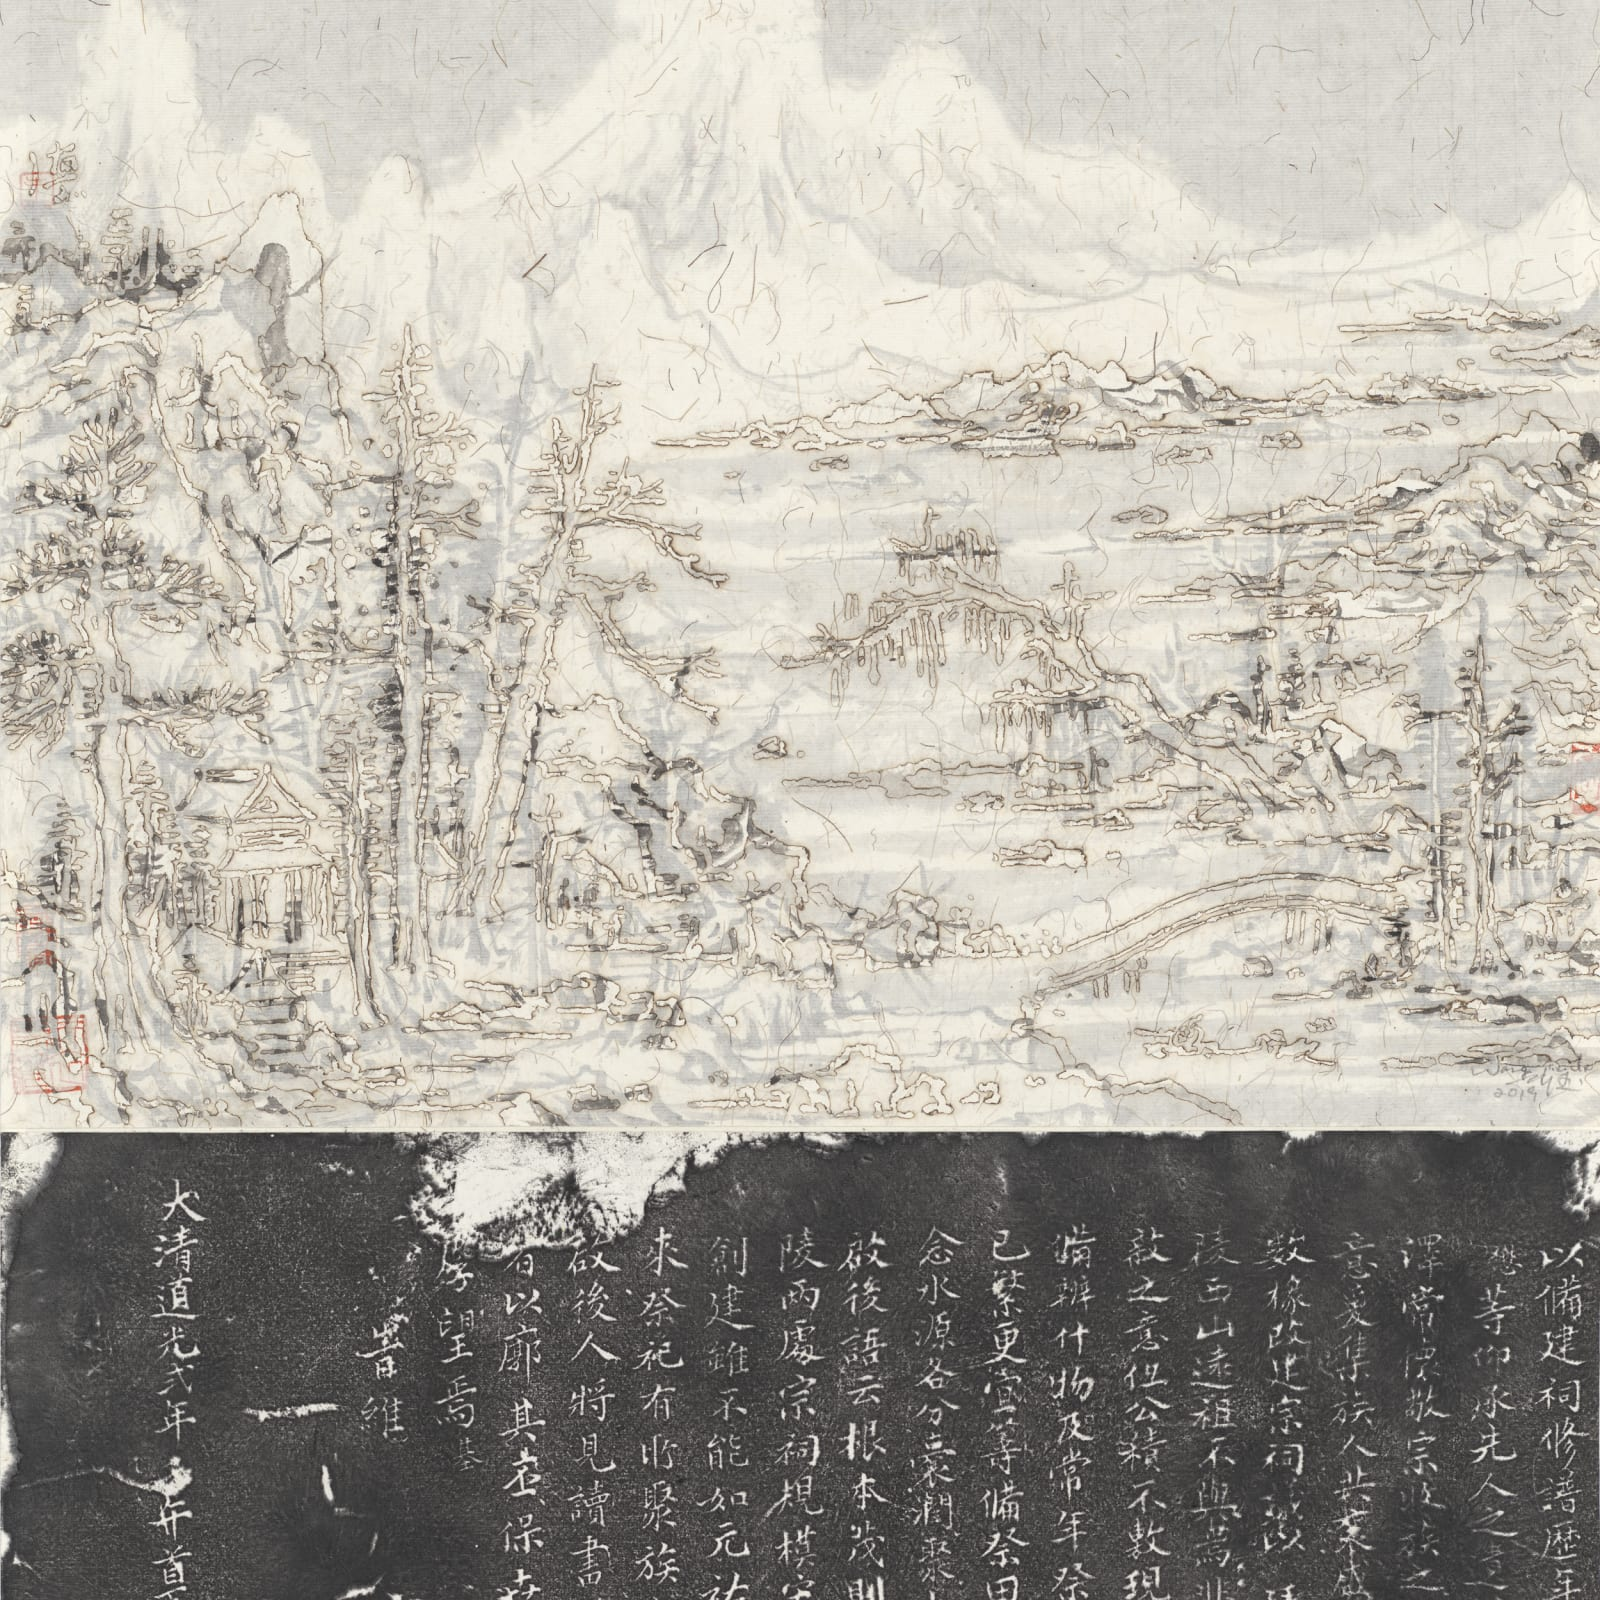 Wang Tiande 王天德, In Search of the Snow on the Lake 湖上问雪图, 2019